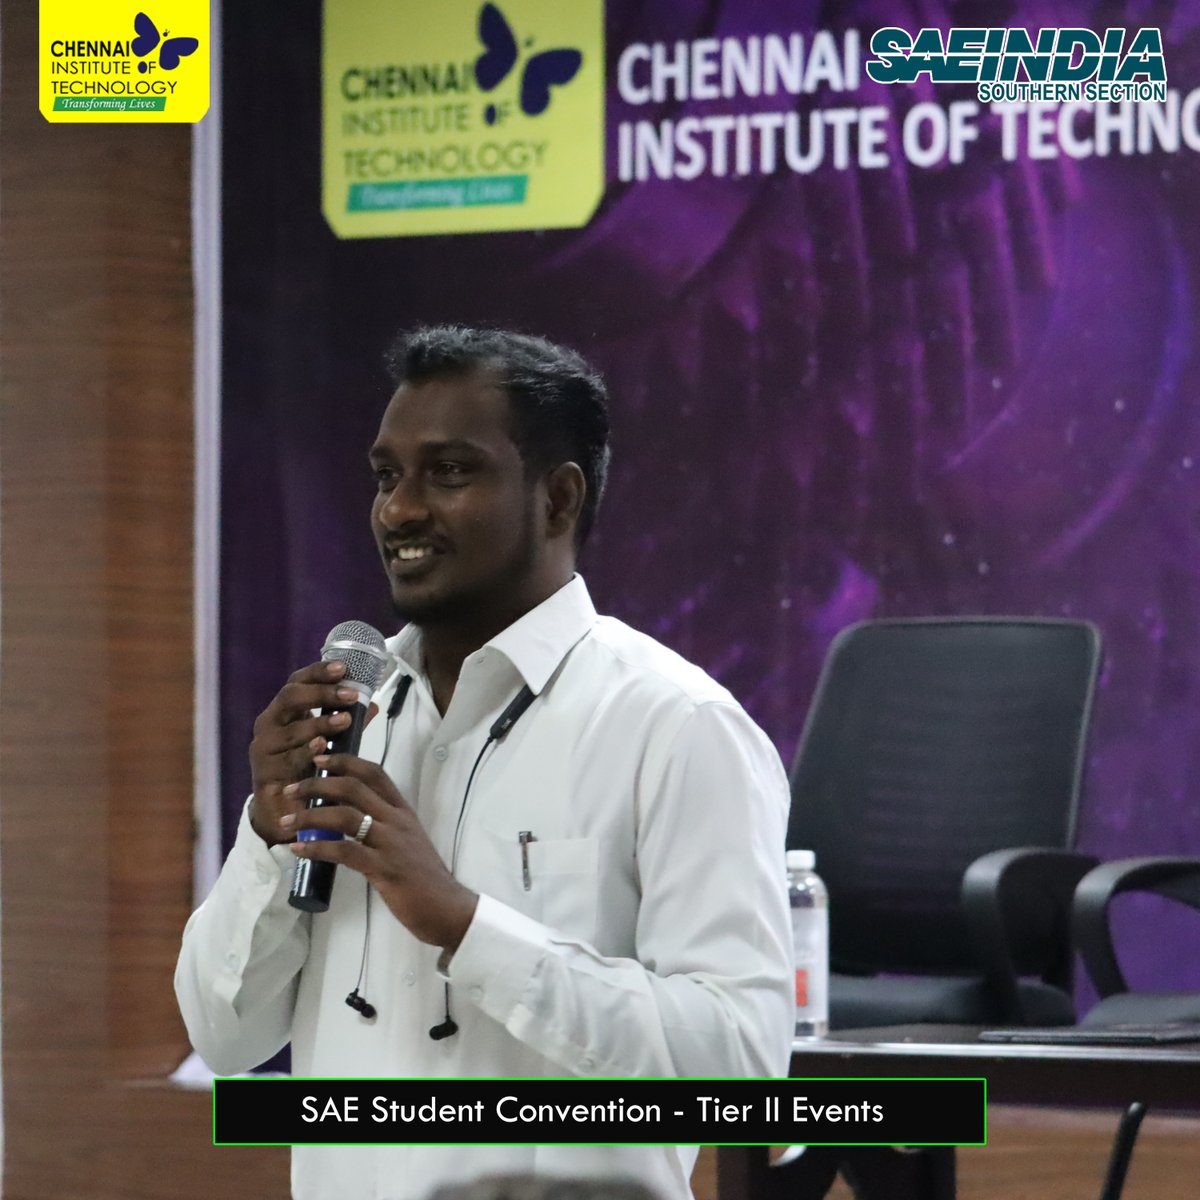 Inauguration of SAE India Southern Section - Tier II Student Convention 2020 at #ChennaiInstituteOfTechnology on 15th Feb, 2020 #SAE #SAEINDIA #StudentConventionpic.twitter.com/aSzoDyfOWy